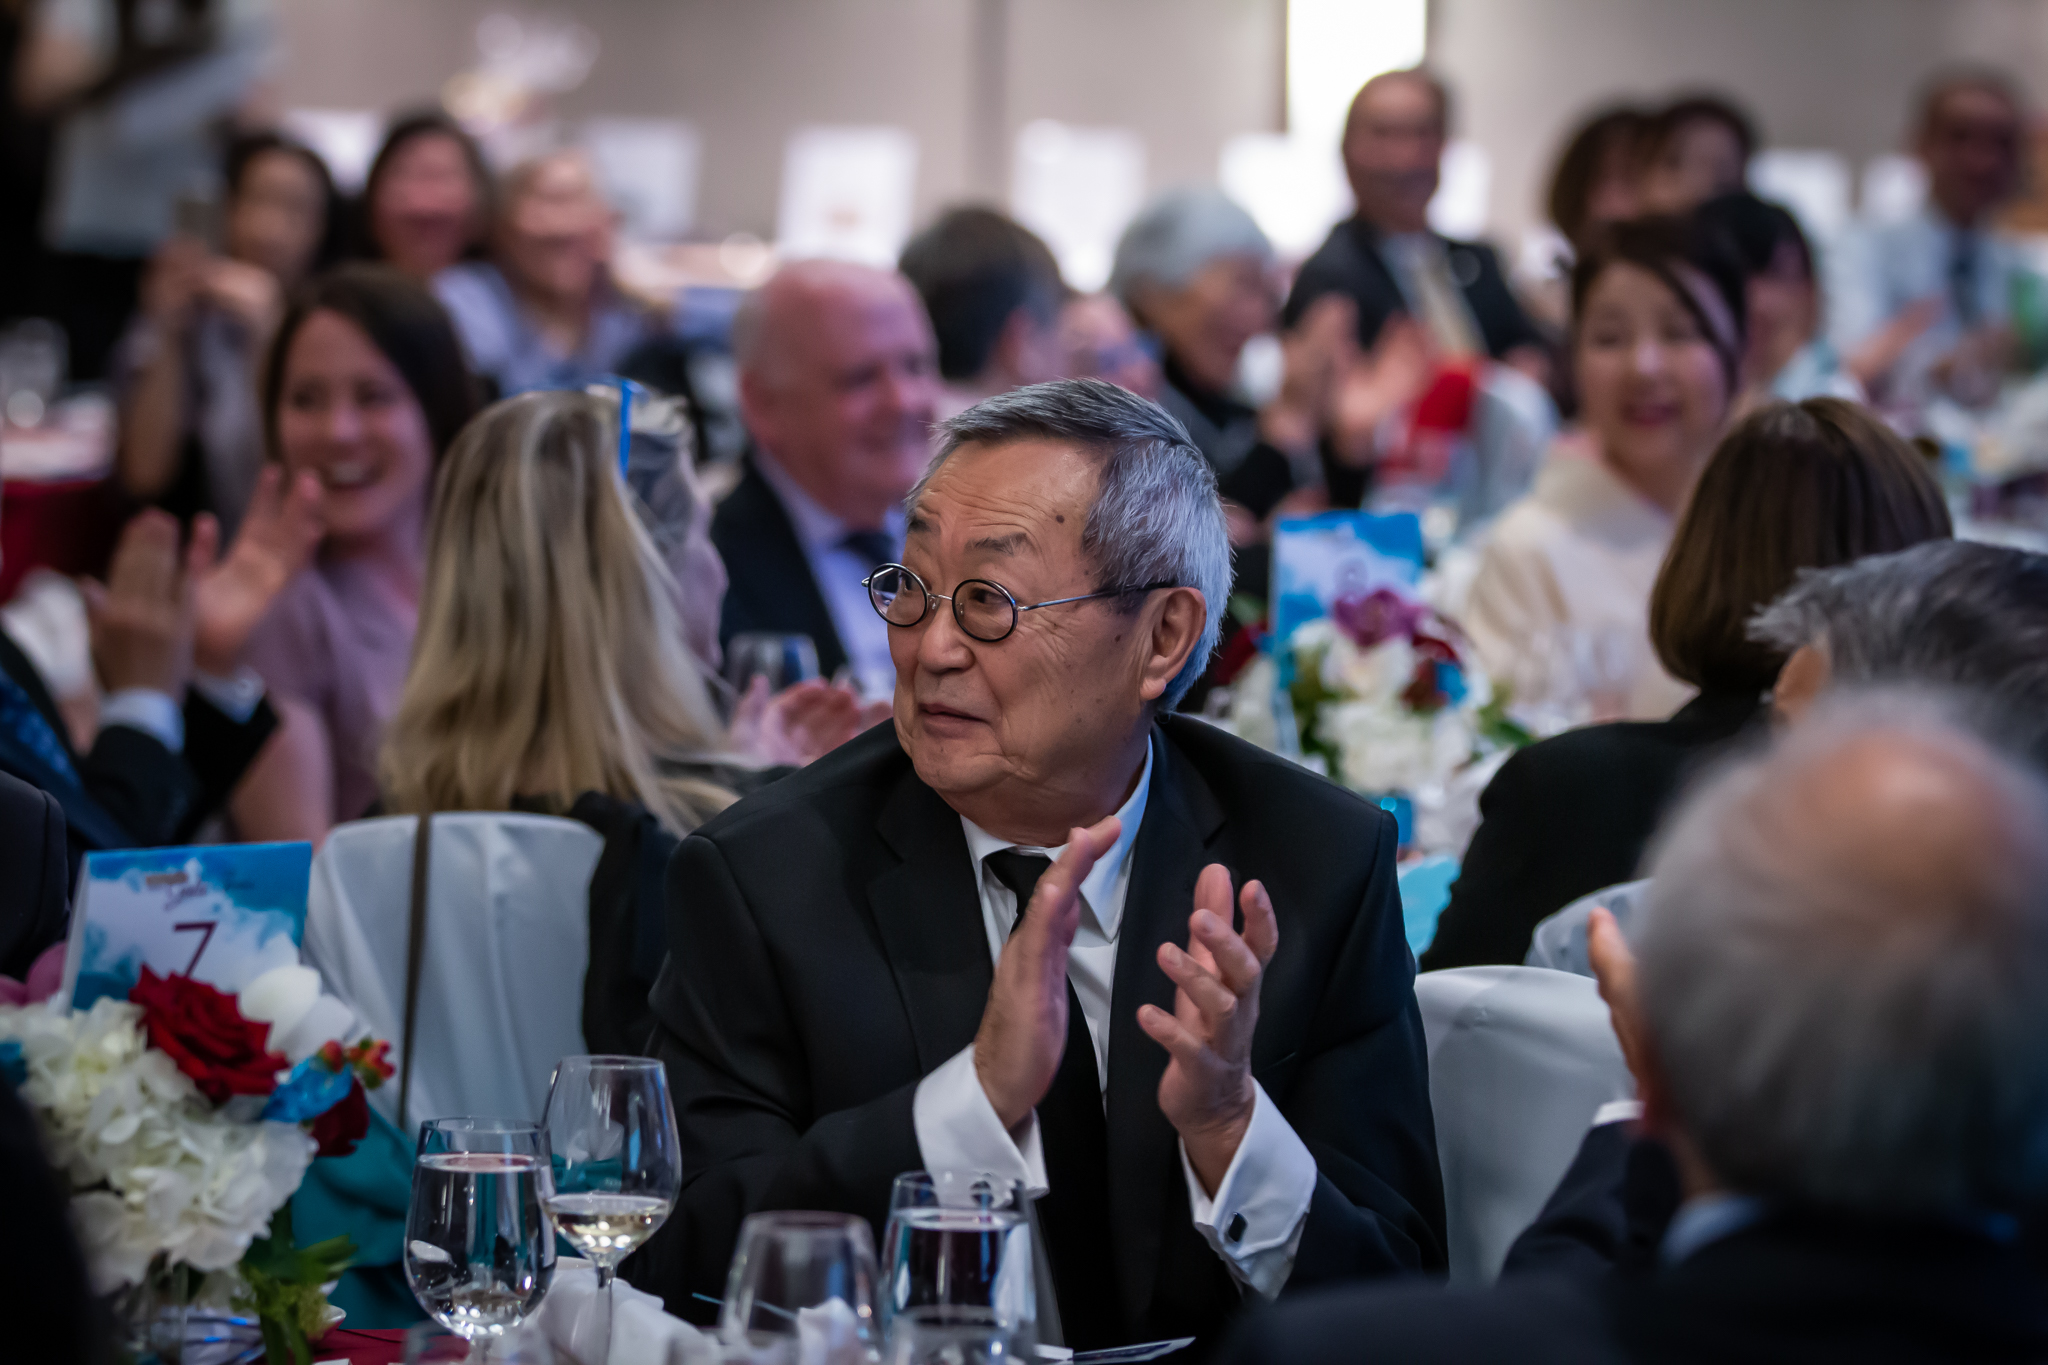 190310 Sakura Gala 2019 19-39-20 - Photo by Adam PW Smith.jpg